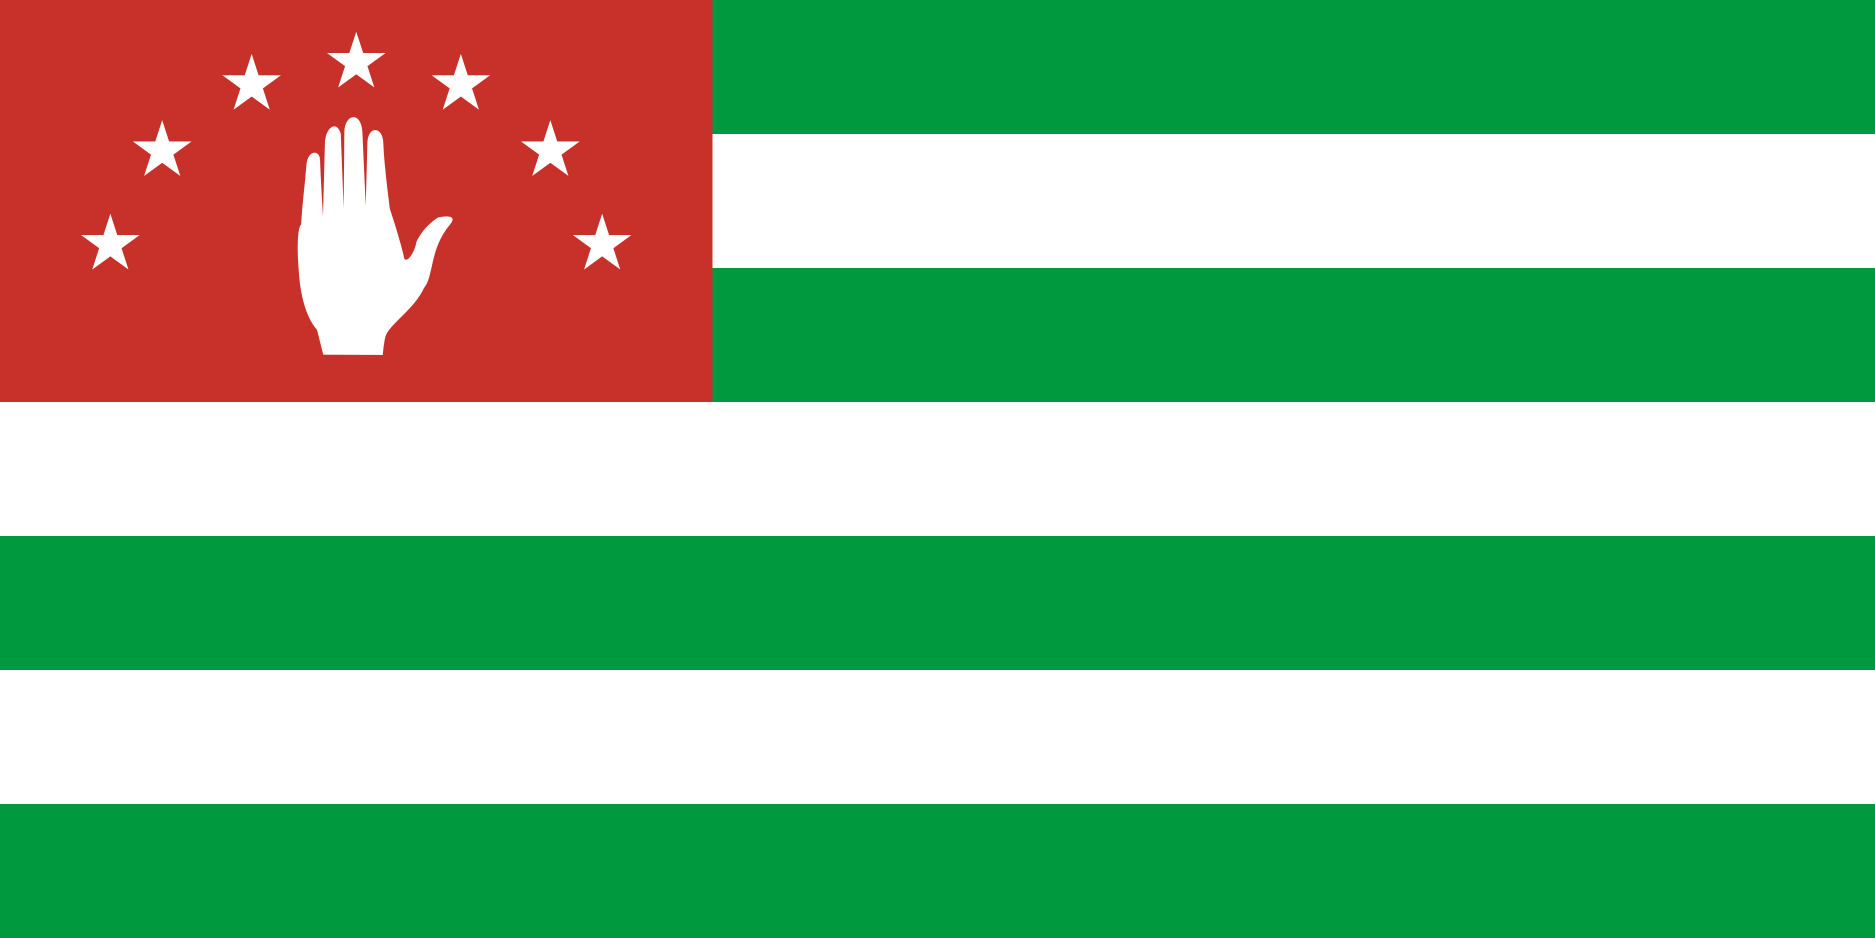 Republic_of_Abkhazia Flag Colours